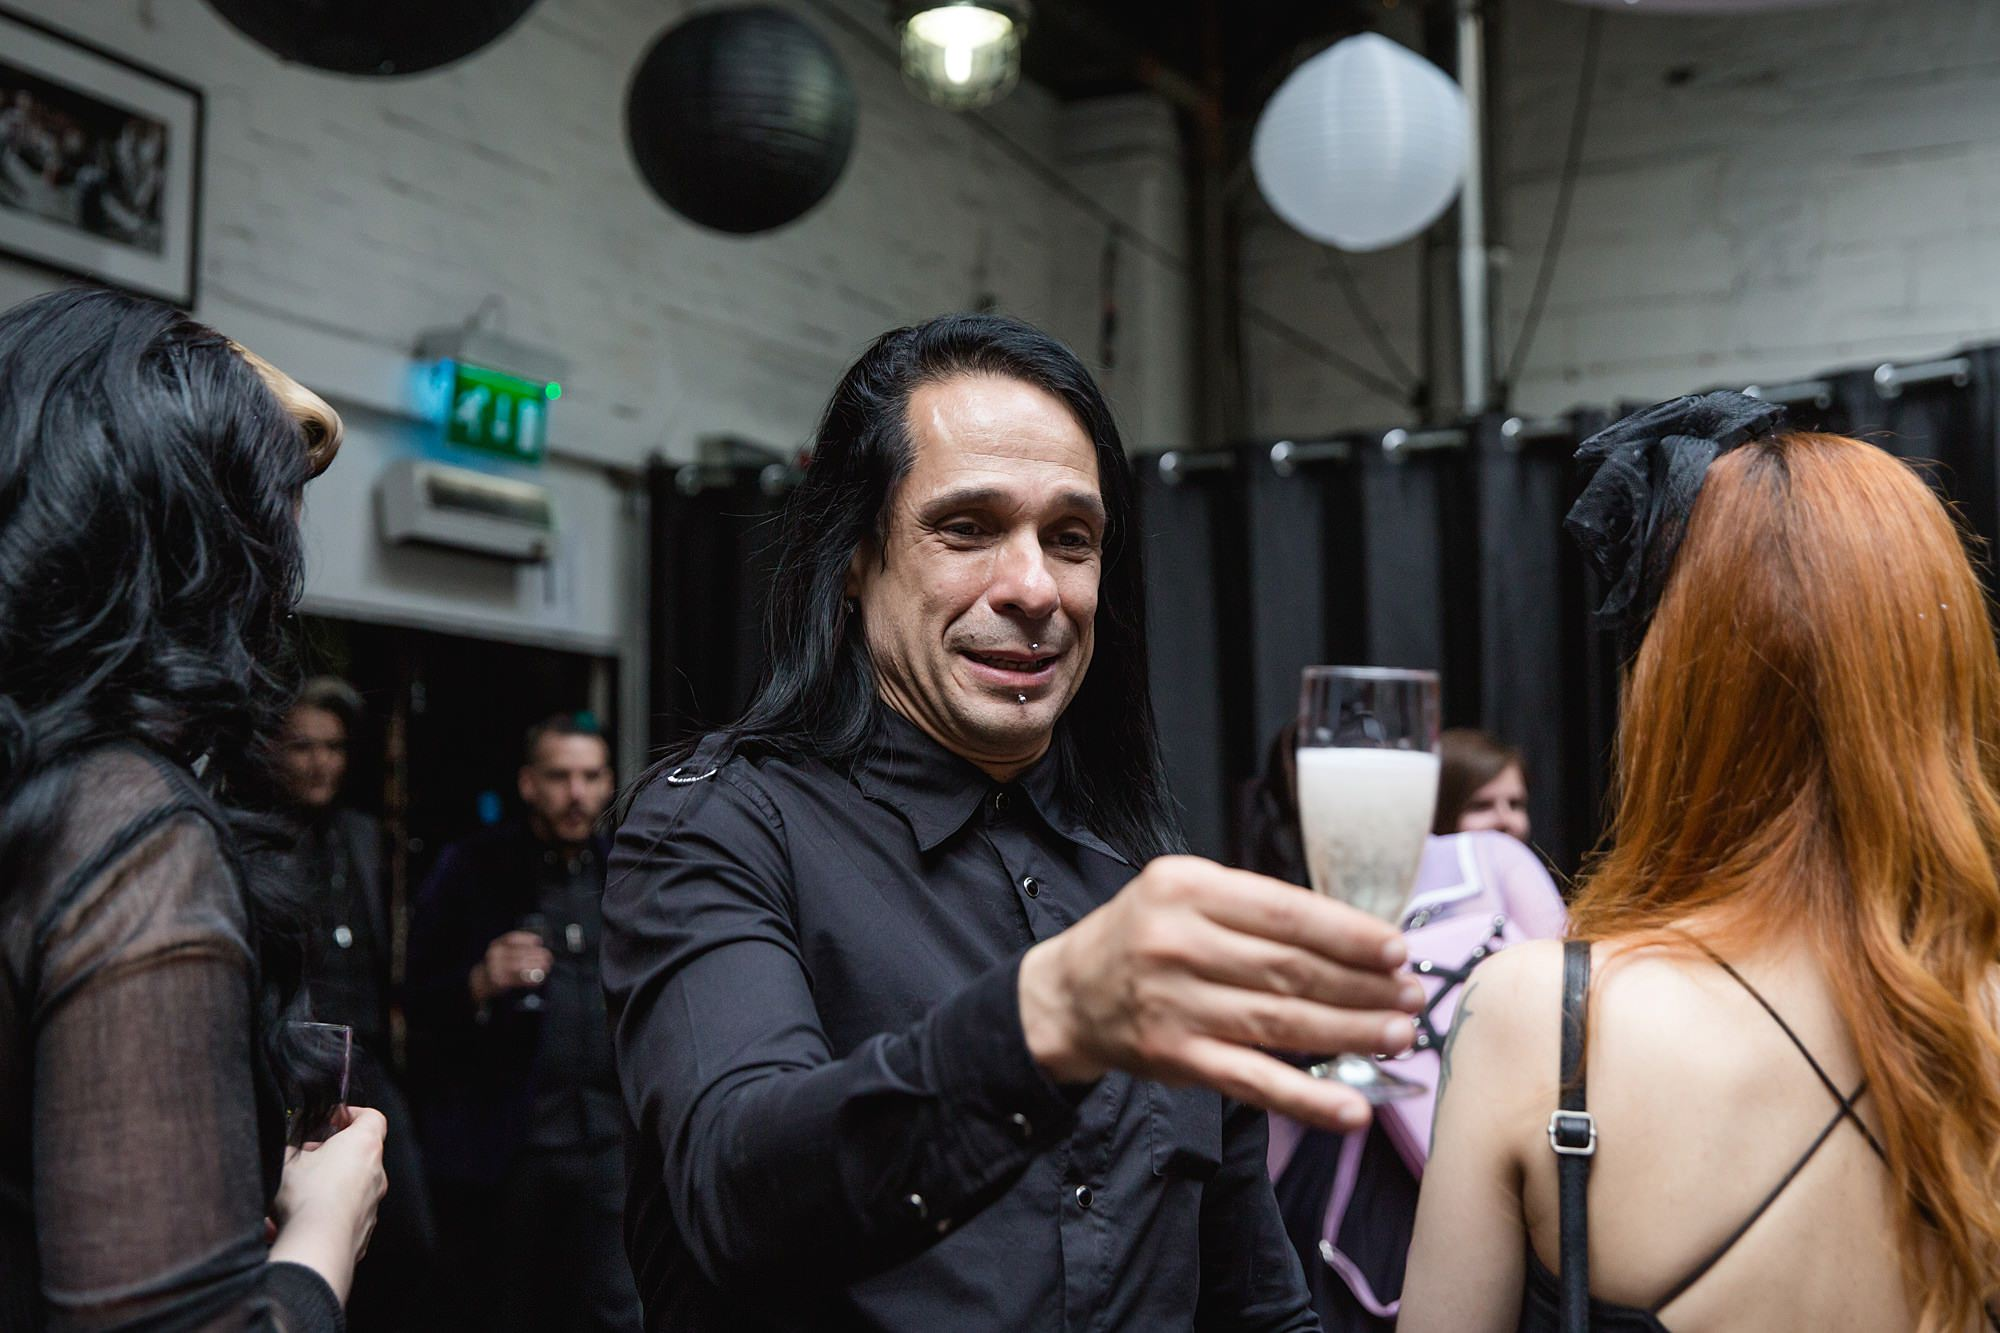 Gothic wedding London guest with prosecco drink